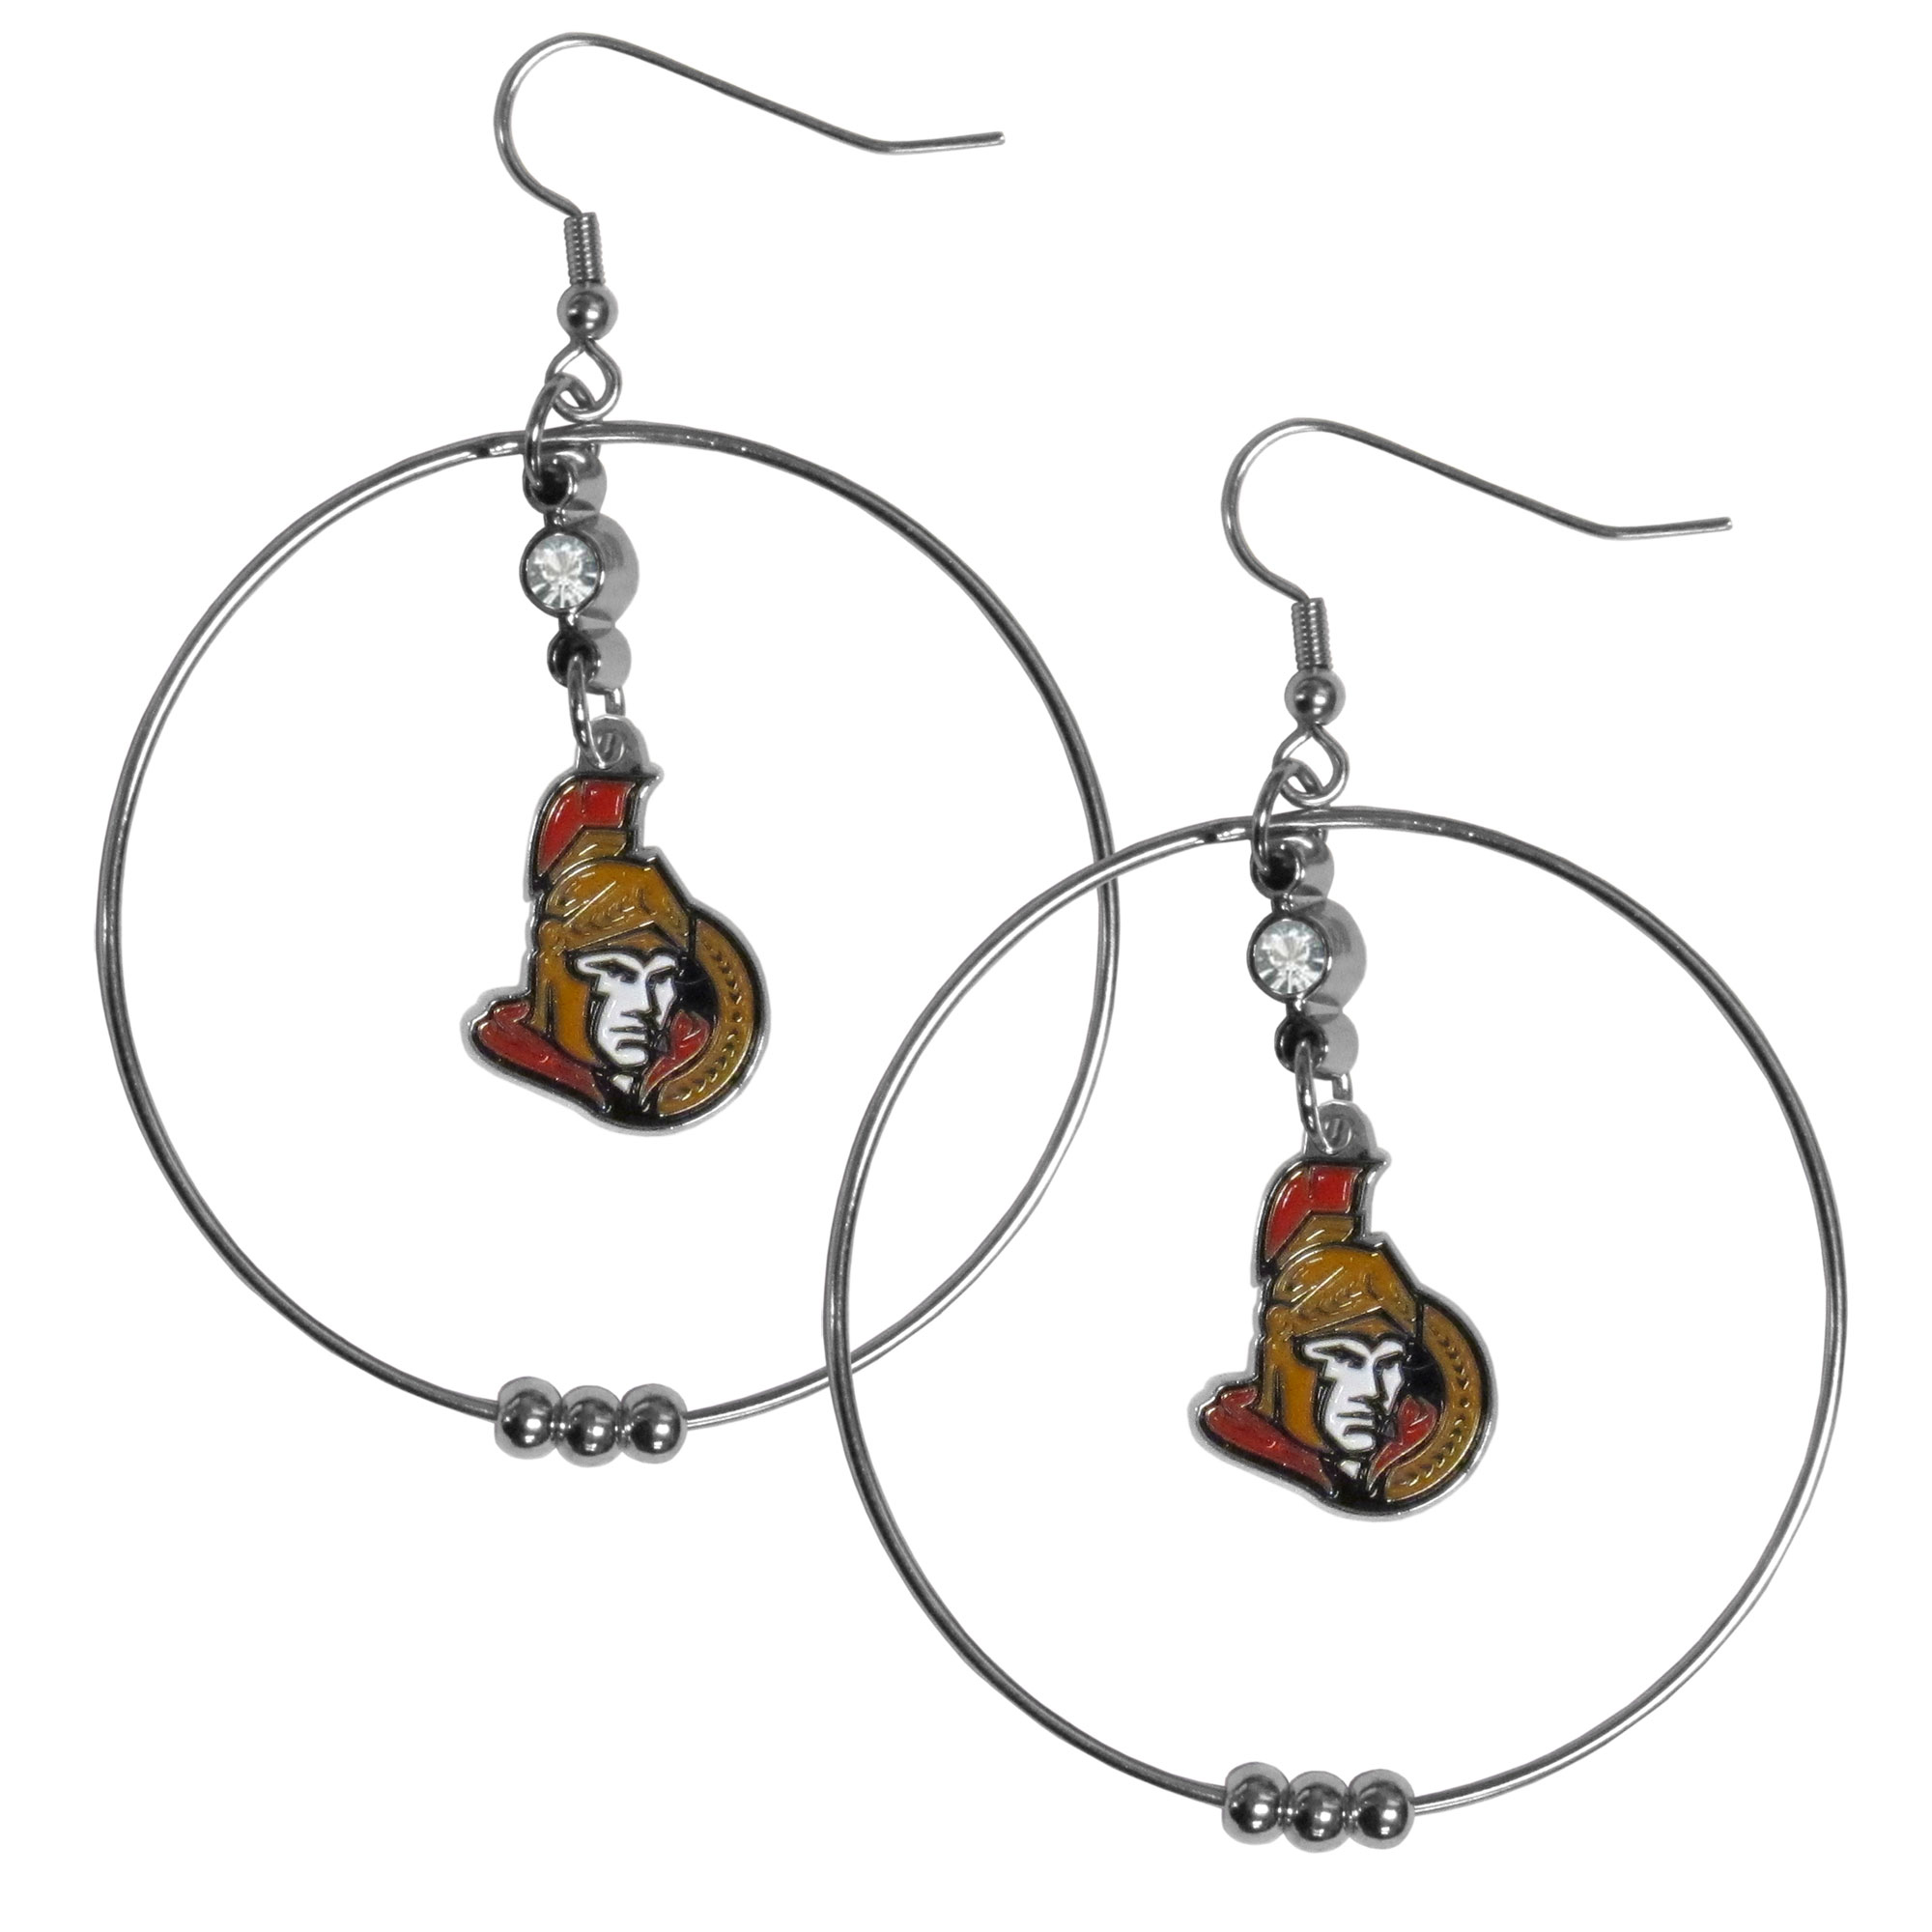 Ottawa Senators® 2 Inch Hoop Earrings - Our large hoop earrings have a fully cast and enameled Ottawa Senators® charm with enameled detail and a high polish nickel free chrome finish and rhinestone access. Hypoallergenic fishhook posts.